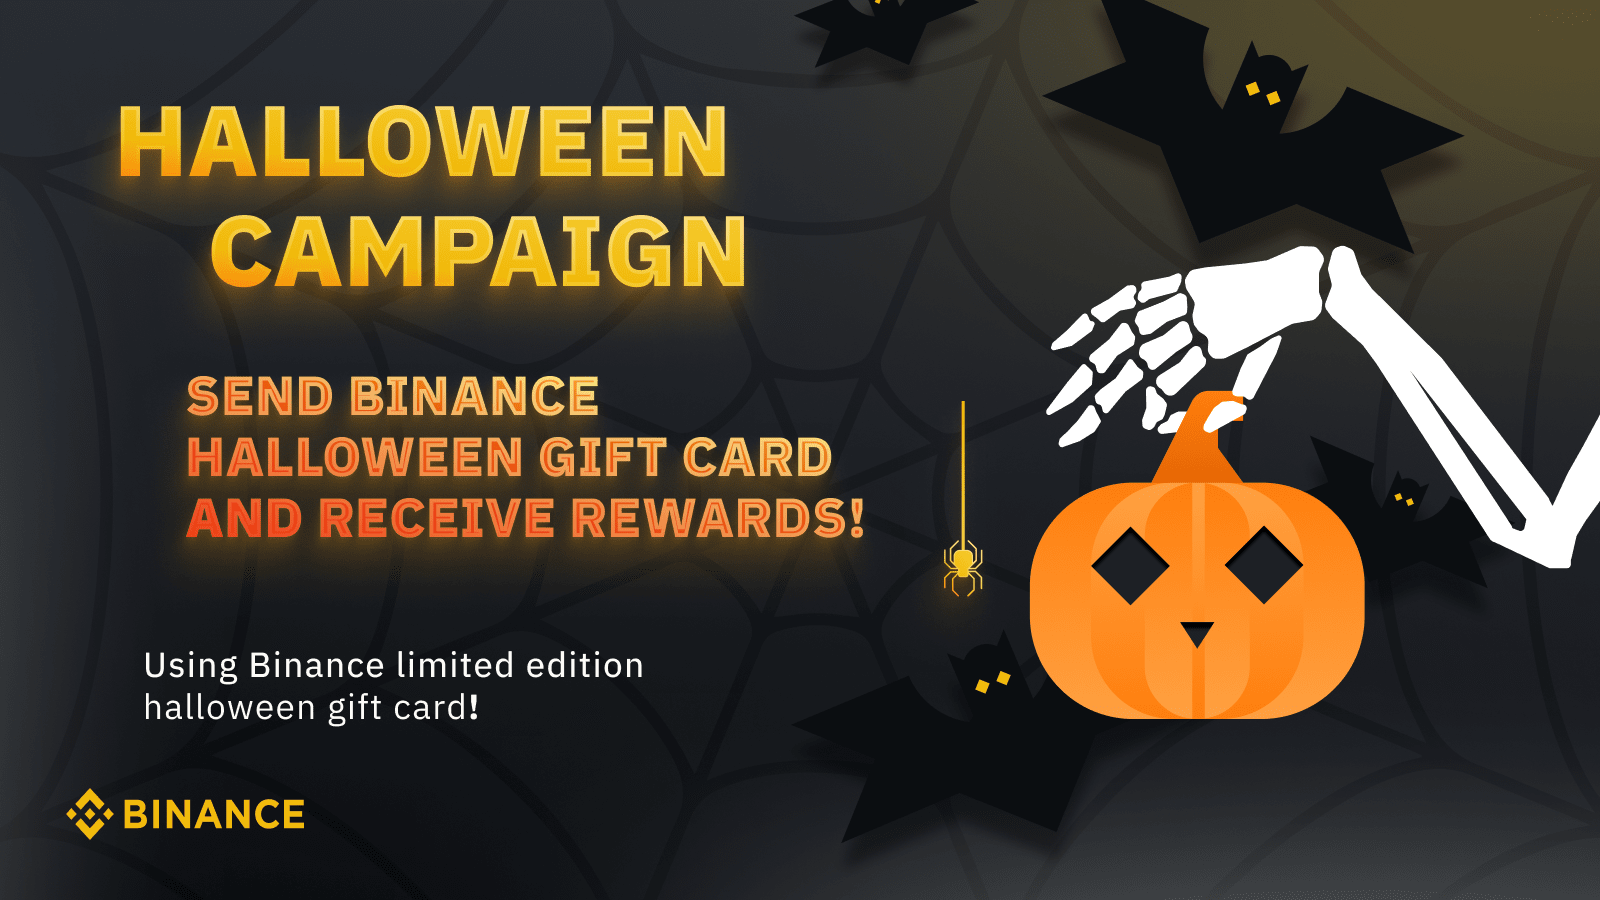 New Zealand - Halloween Gift Card Campaign!